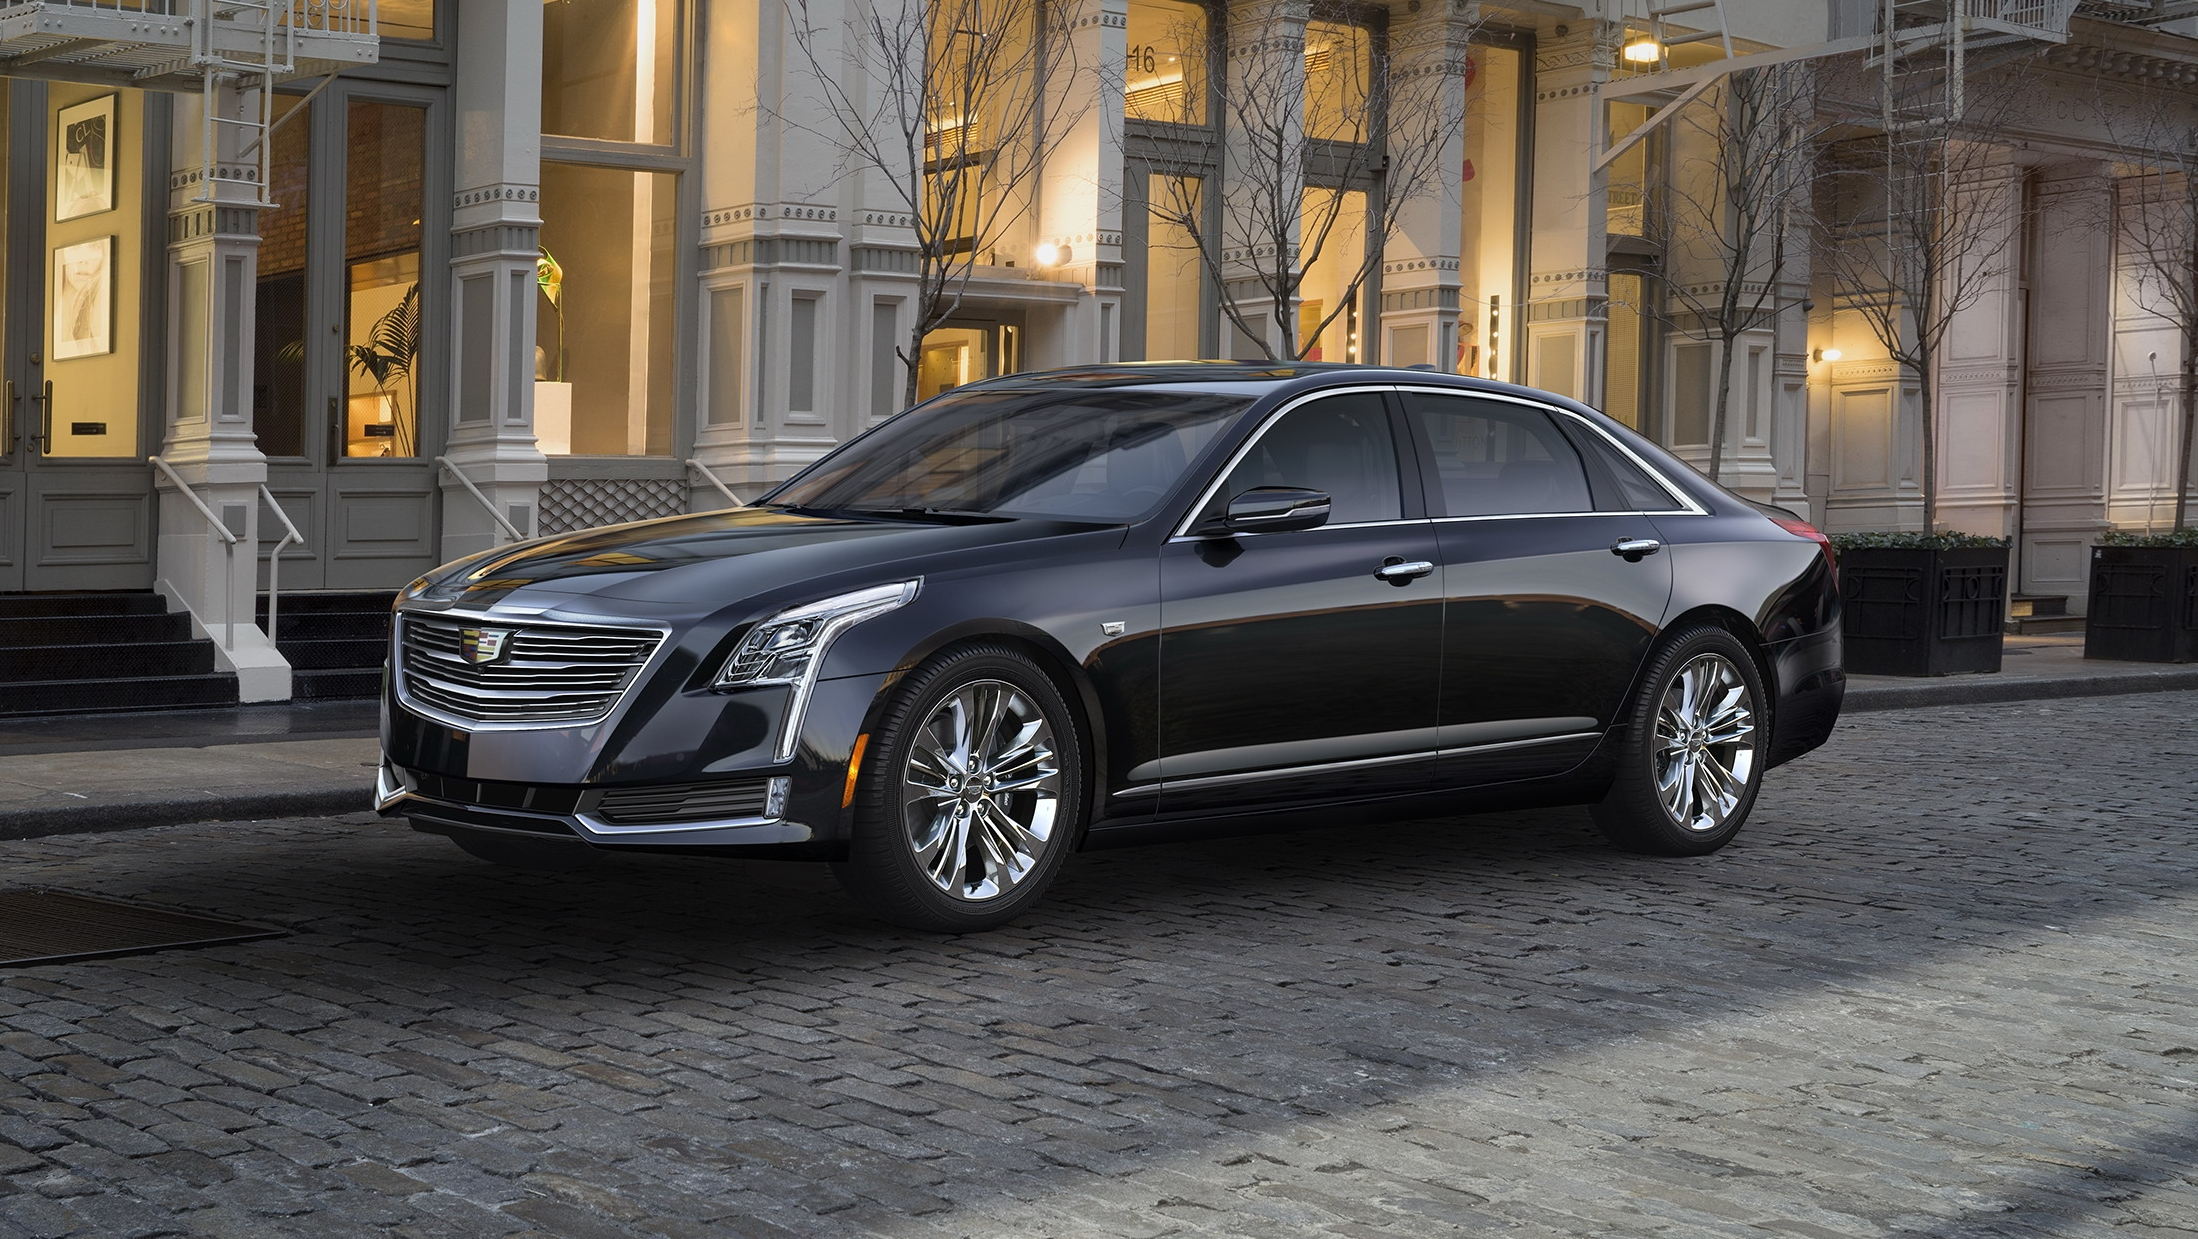 2016 Cadillac CT6 | Top Speed